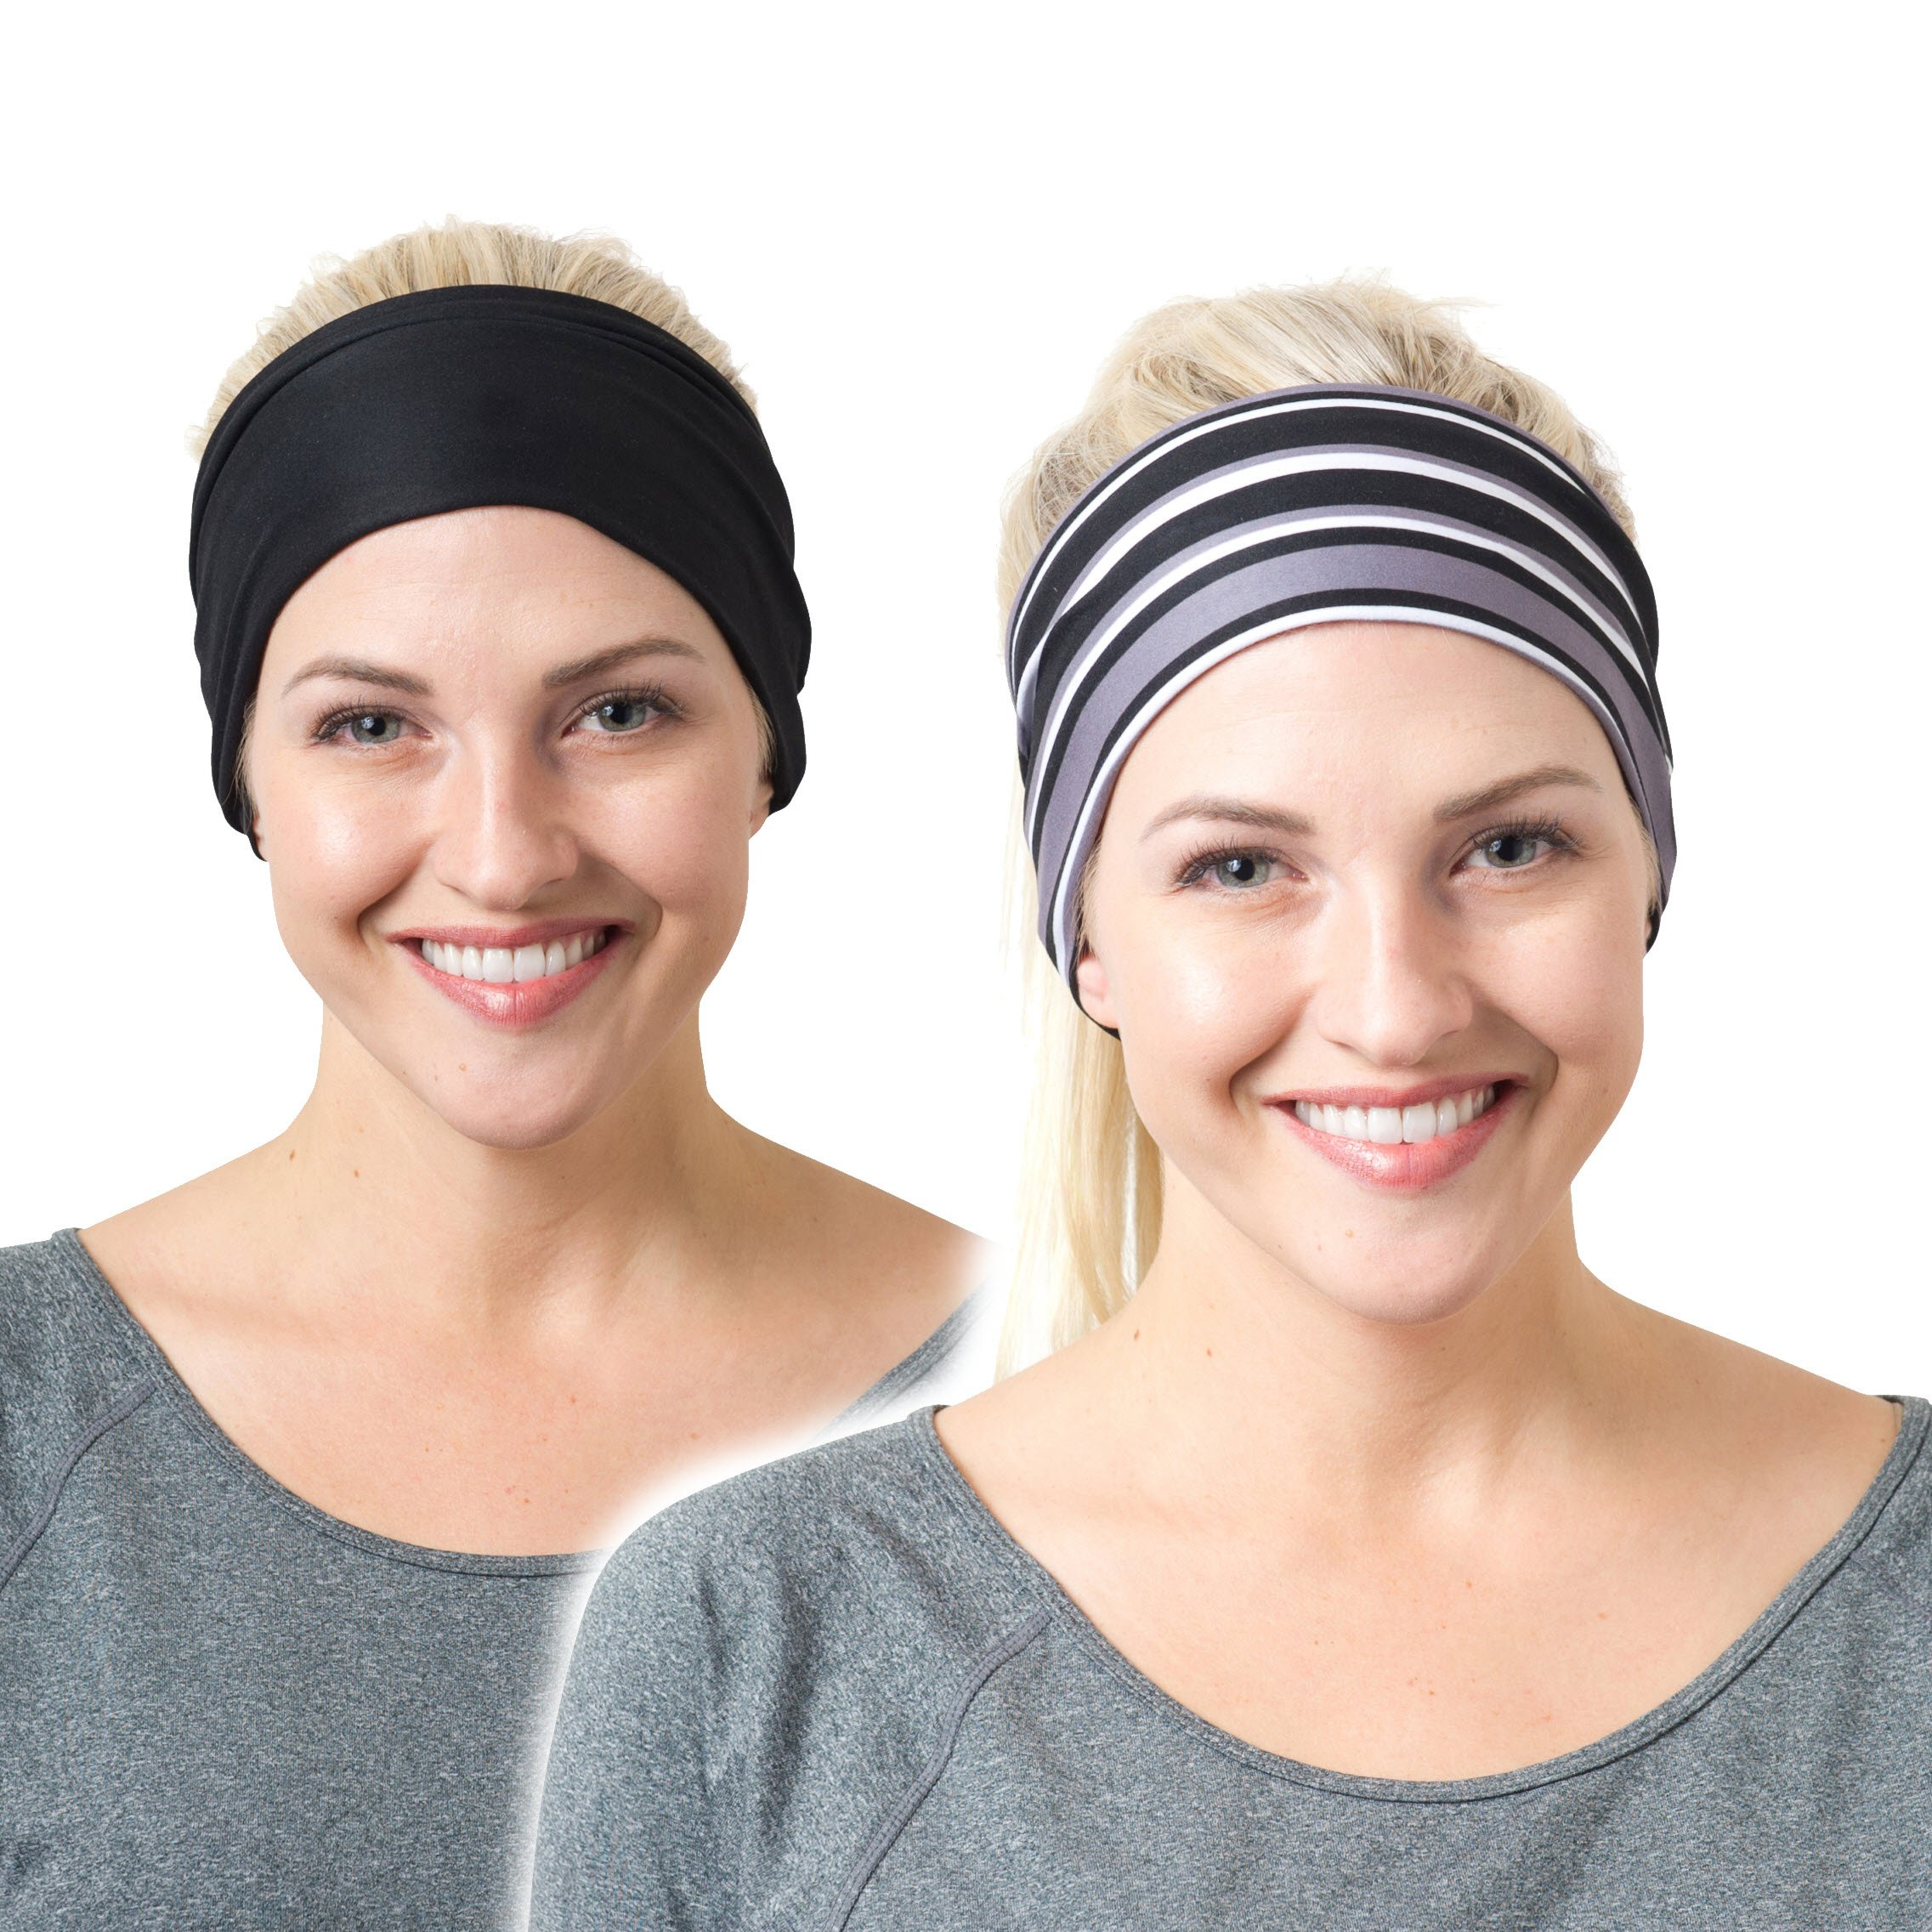 RiptGear Headband 2Pack - Black Solid and Black Striped